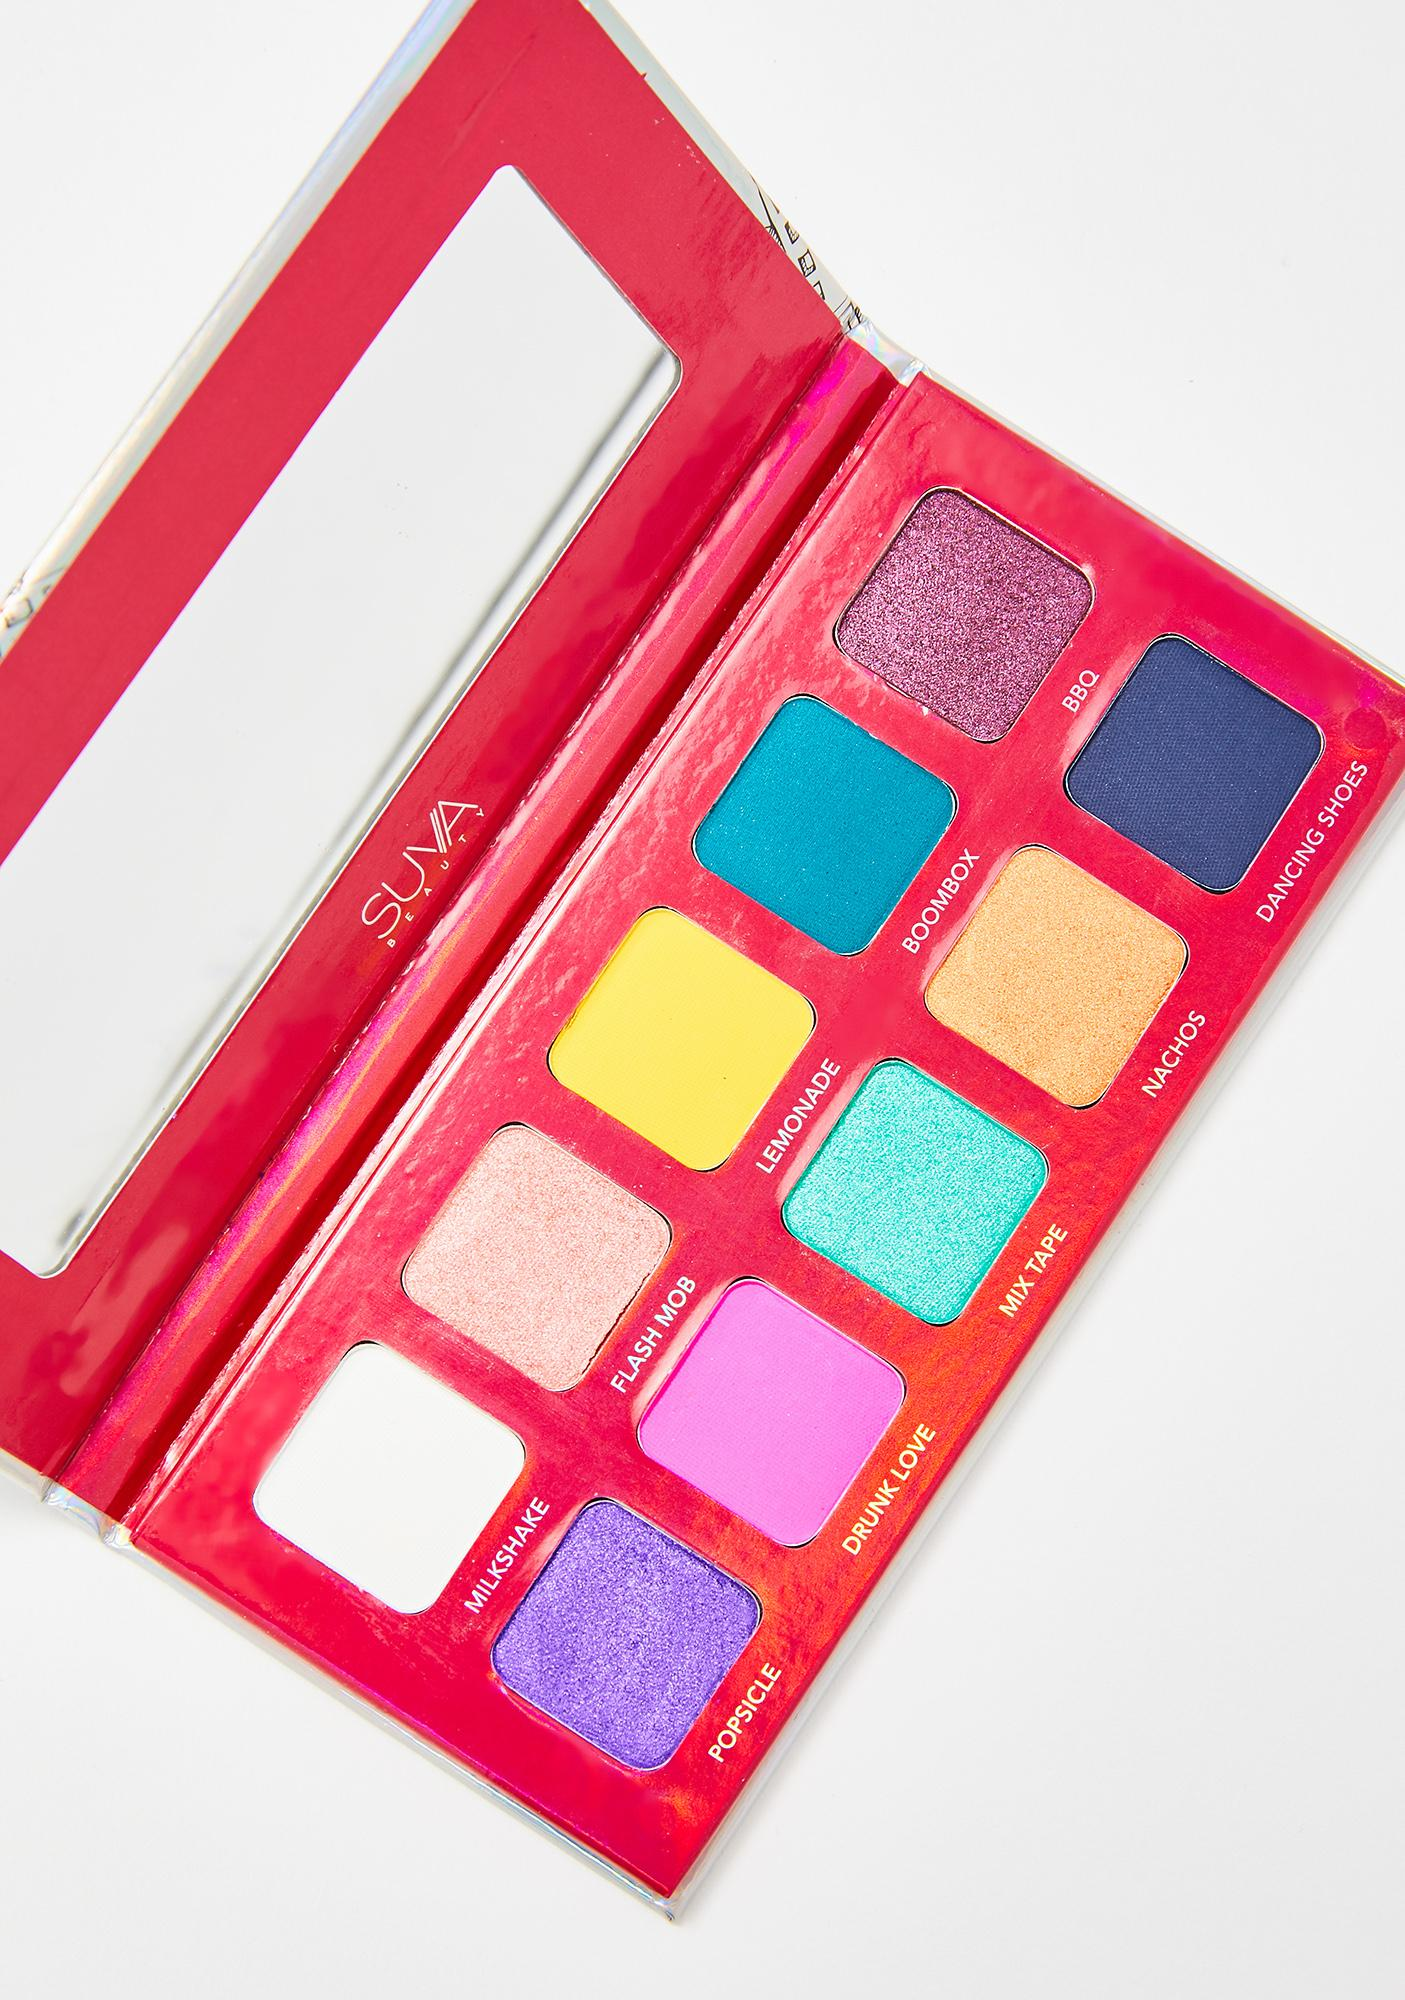 SUVA Beauty Block Party Palette